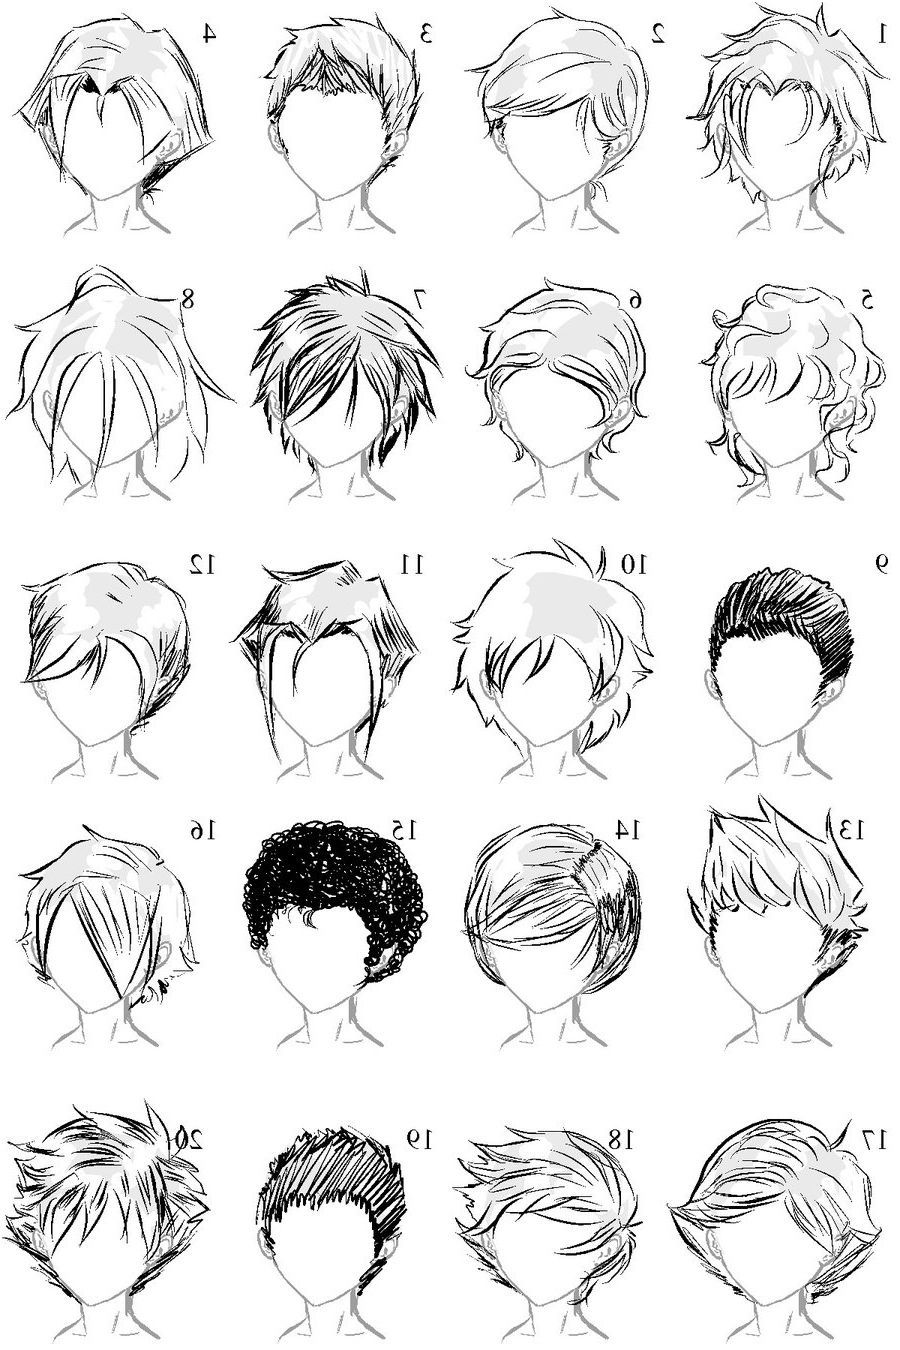 Curly Anime Male Hairstyles Anime Boy Hair Anime Hairstyles Male Anime Hair